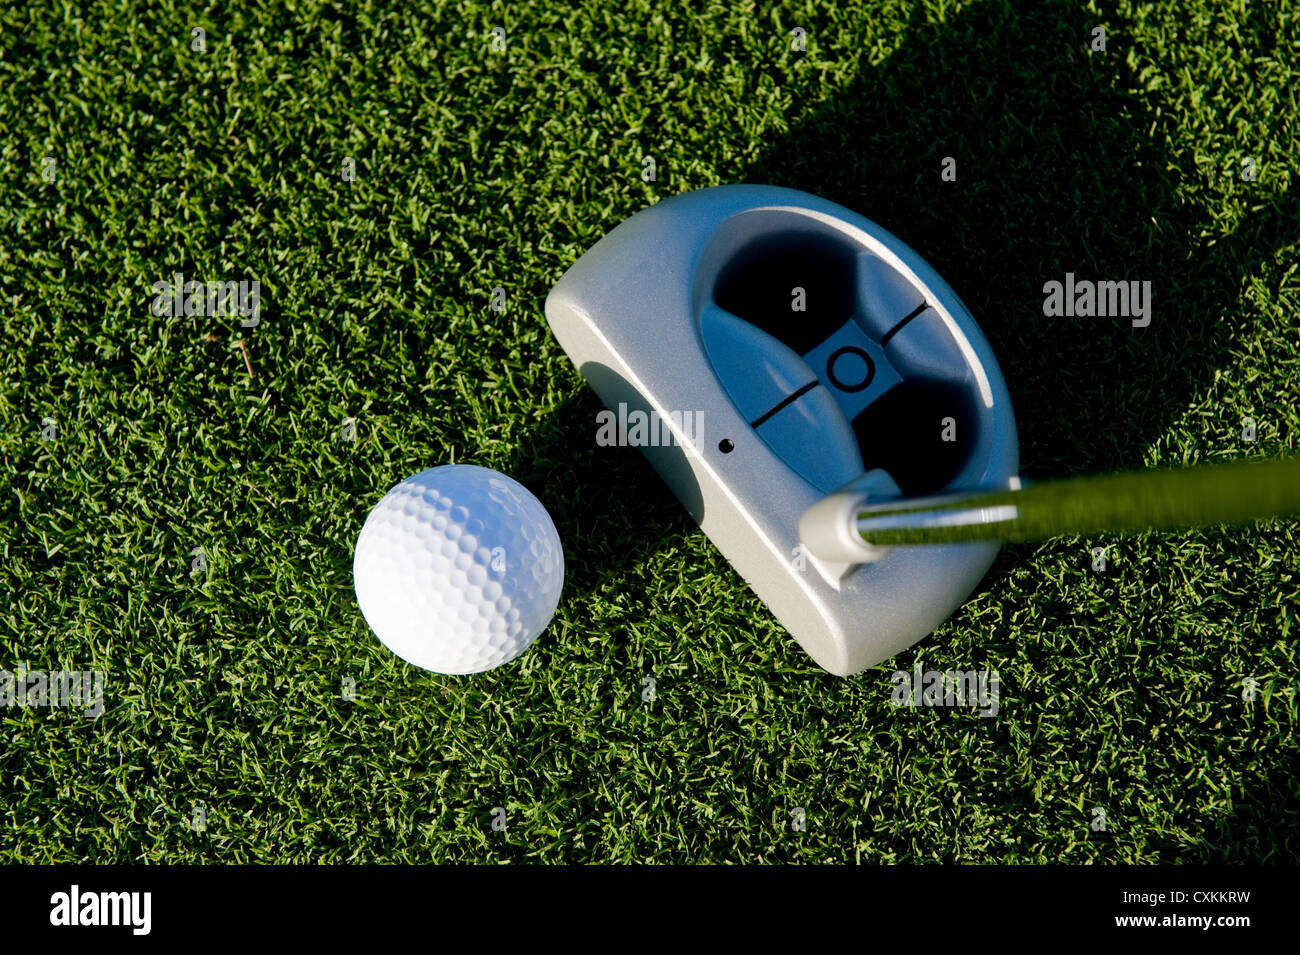 A short putt in the game of golf with a ball and a putter - Stock Image